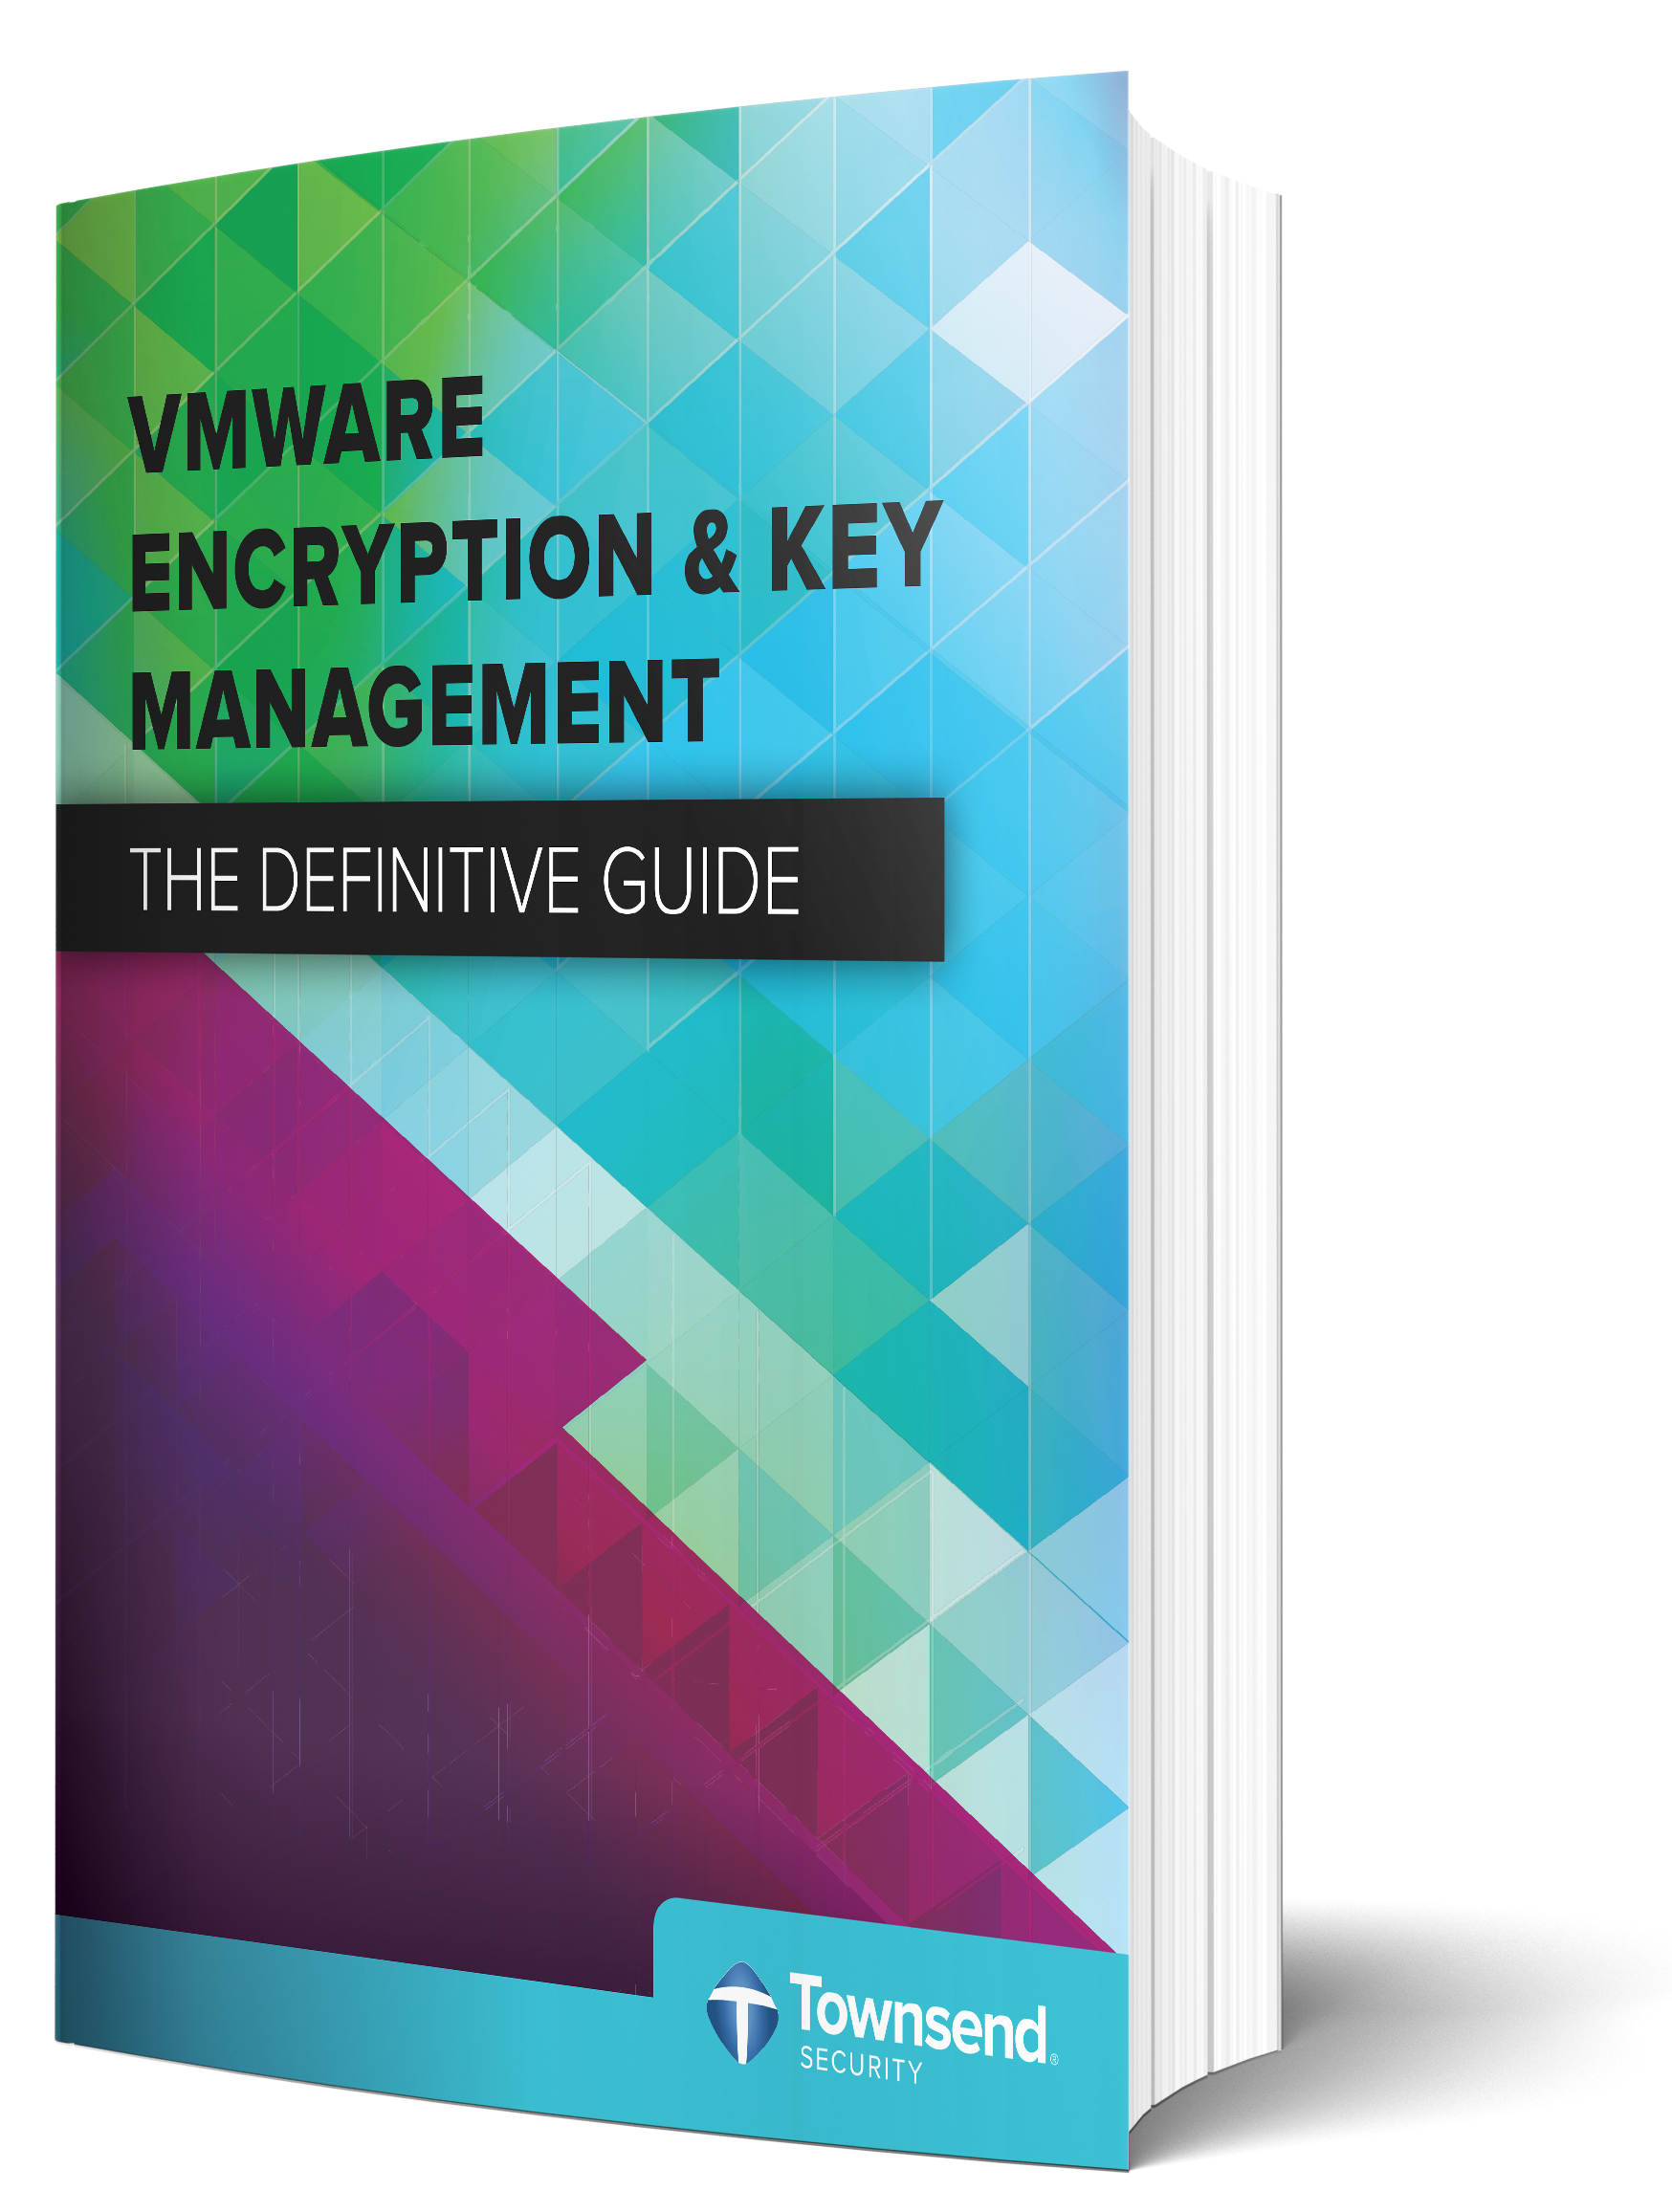 The Definitive Guide to VMware Encryption and Key Management